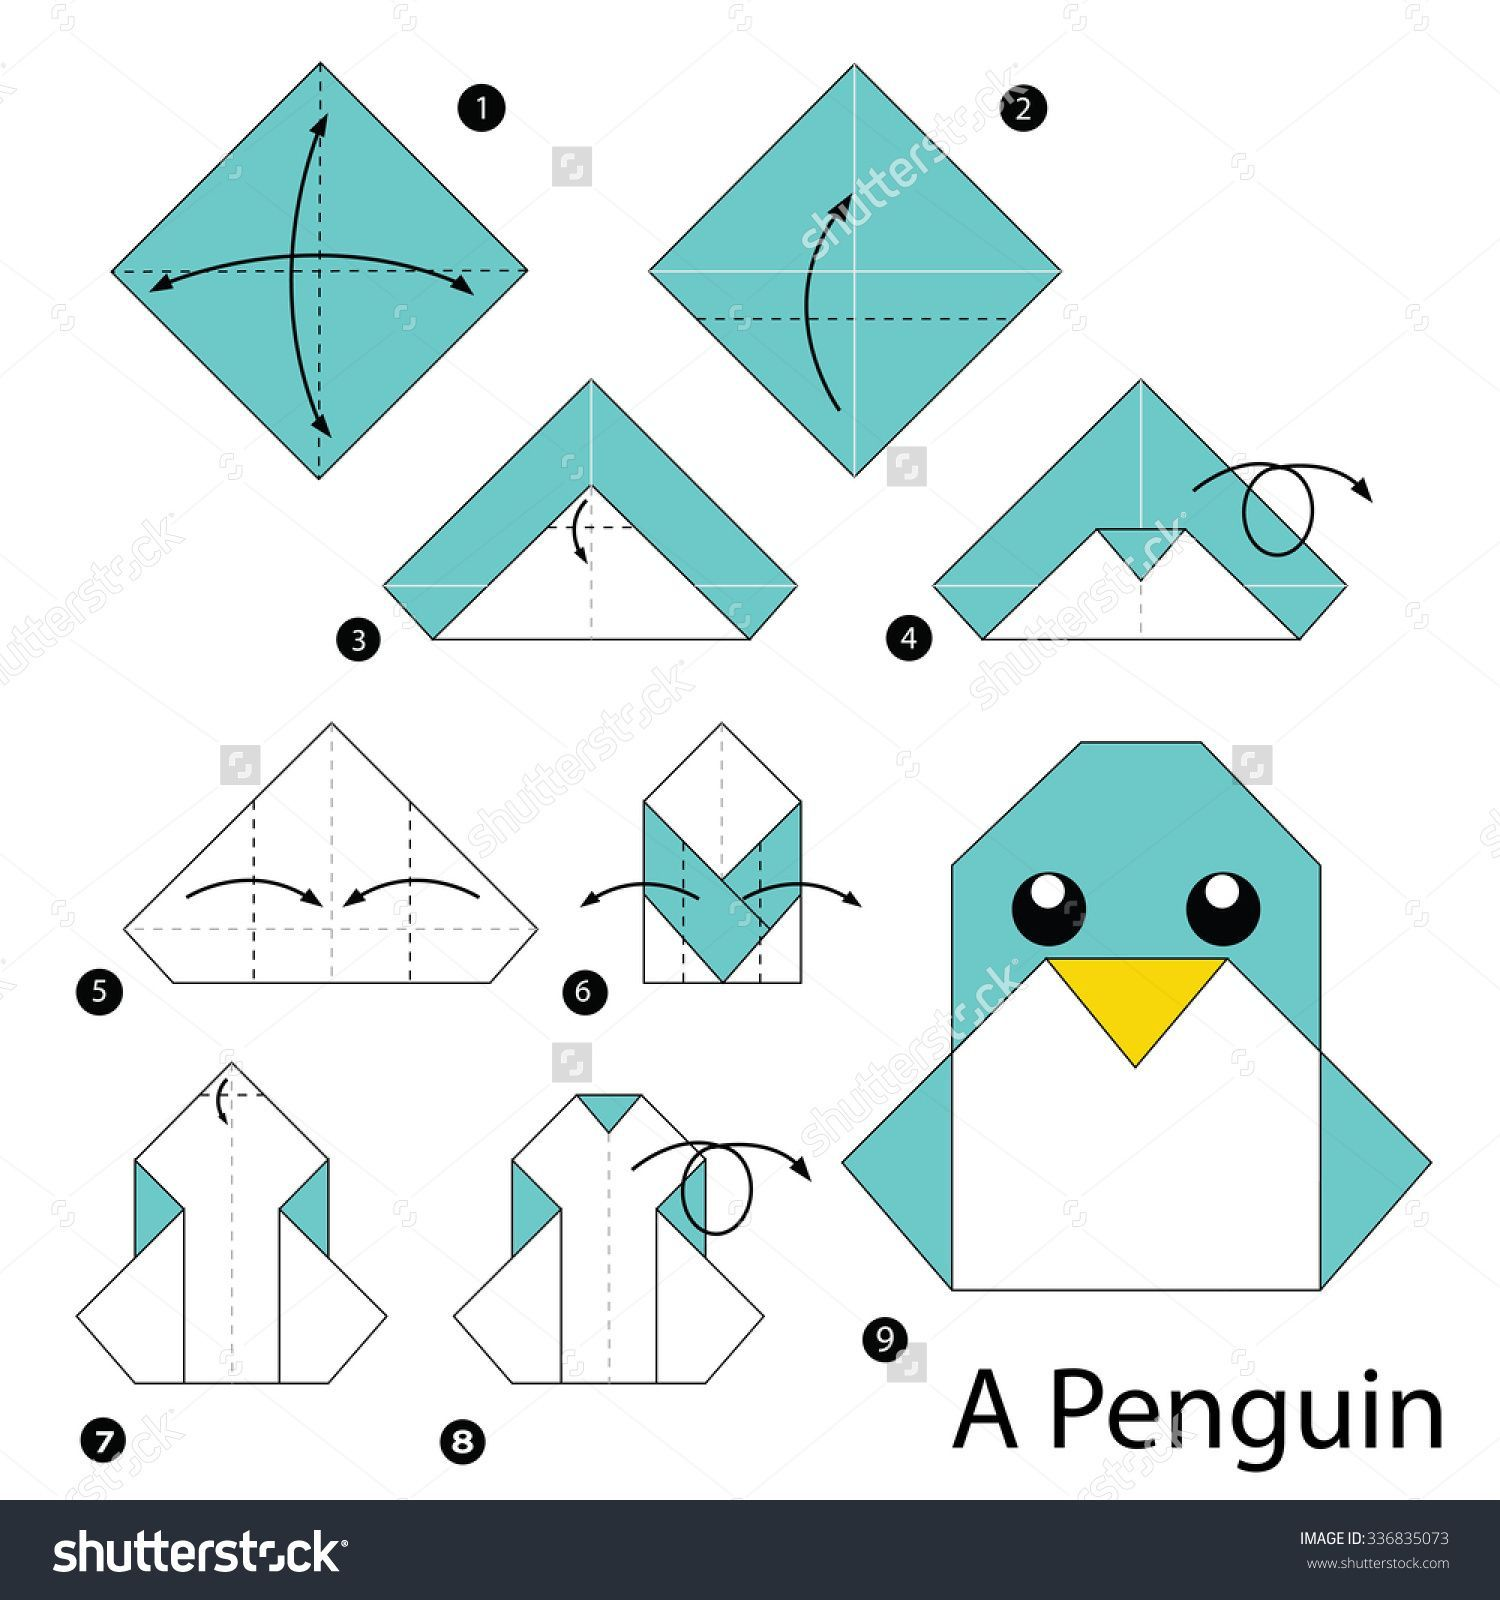 27 Wonderful Photo Of Origami For Beginners How To Make Origami For Beginners How To Make Easy Origami Animals Origami For Kids Animals Easy Origami For Kids